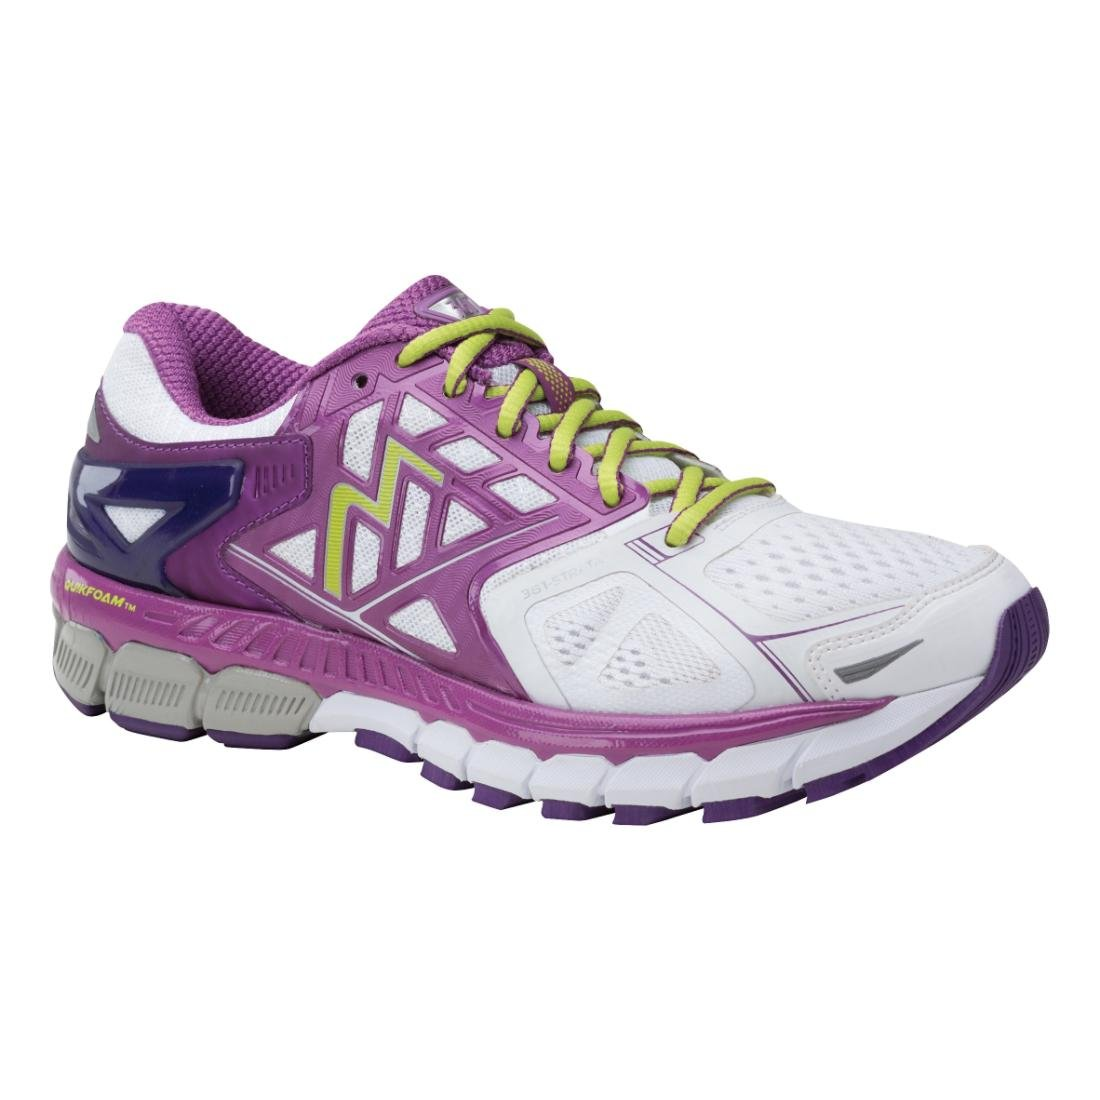 361 Degrees Womens Strata B01CEYV1DE 8 B(M) US|White/Violet